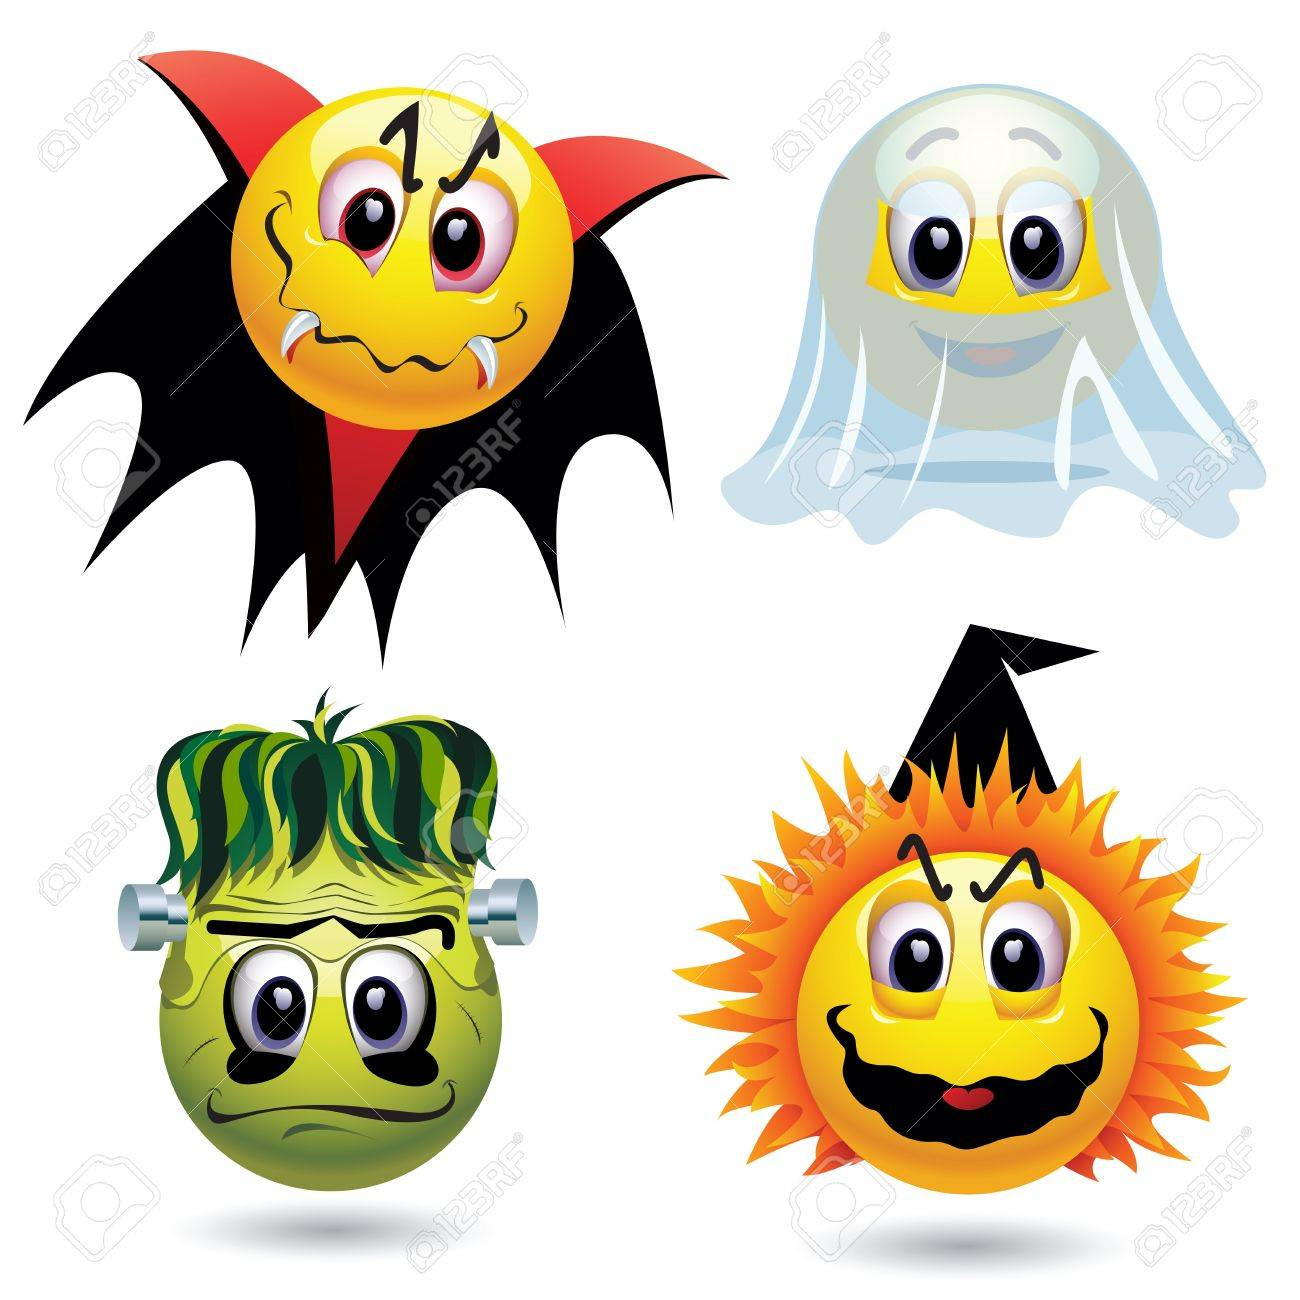 Smiley Balls With Halloween Mask Royalty Free Cliparts, Vectors ...